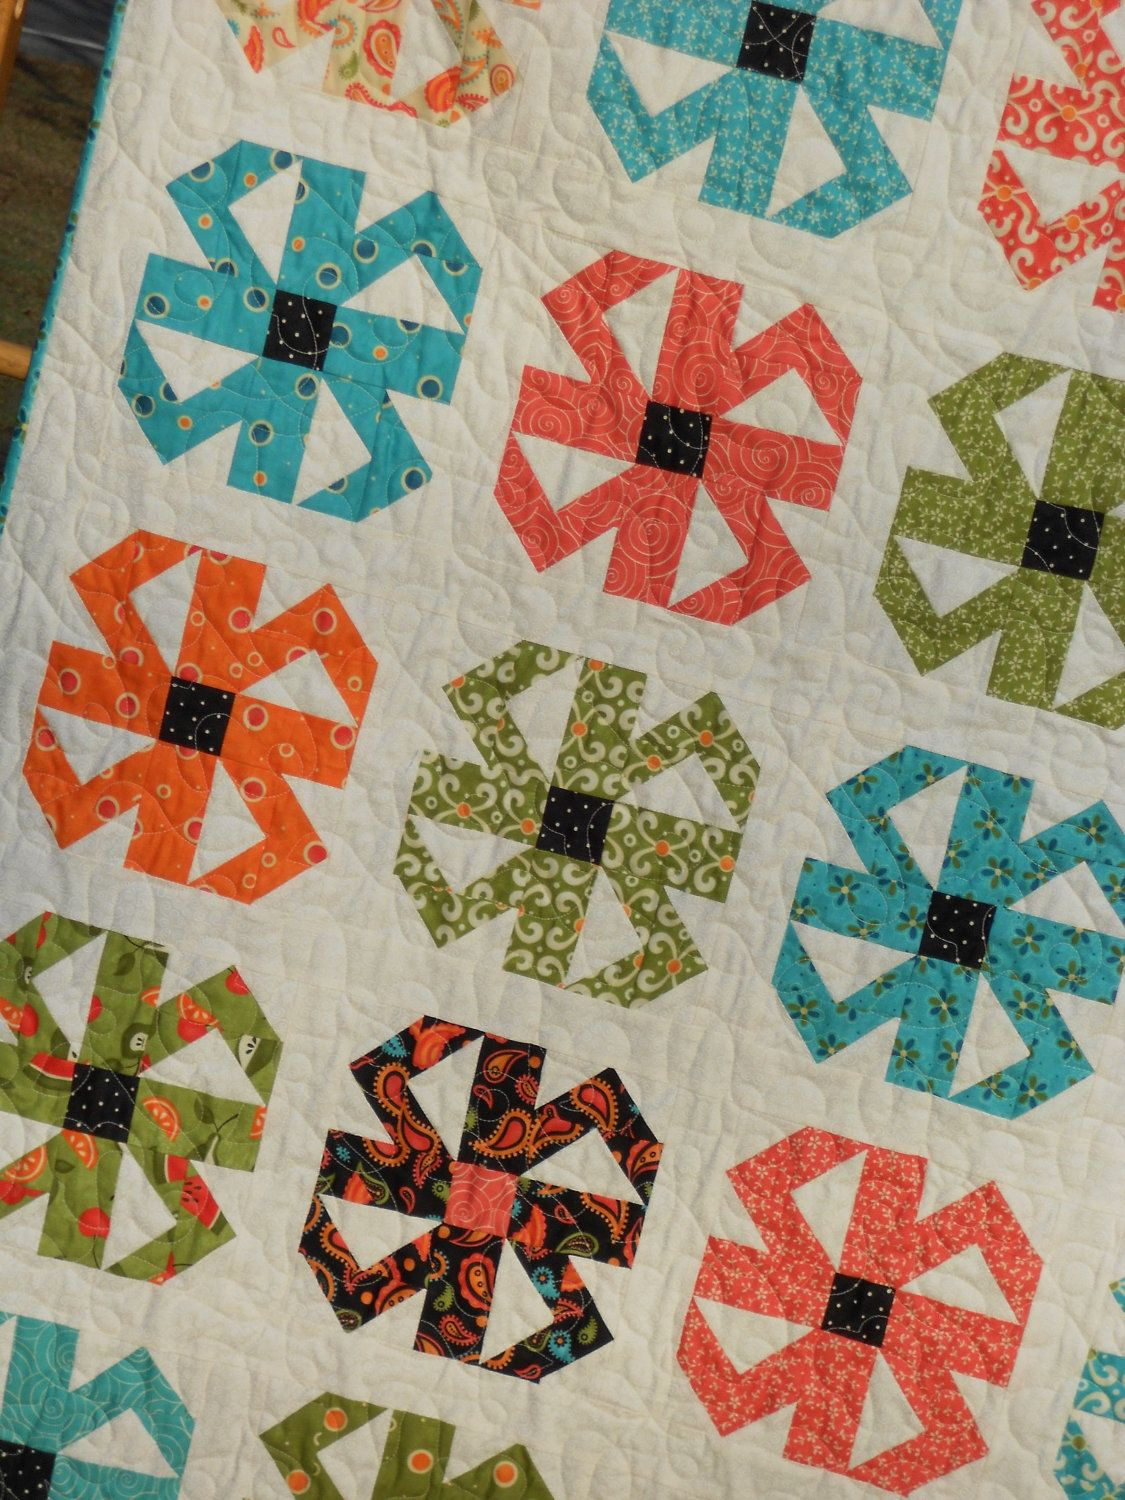 Quilt Pattern - Layer Cake Friendly - Baby to Queen / King size ... : layer cake friendly quilt patterns - Adamdwight.com